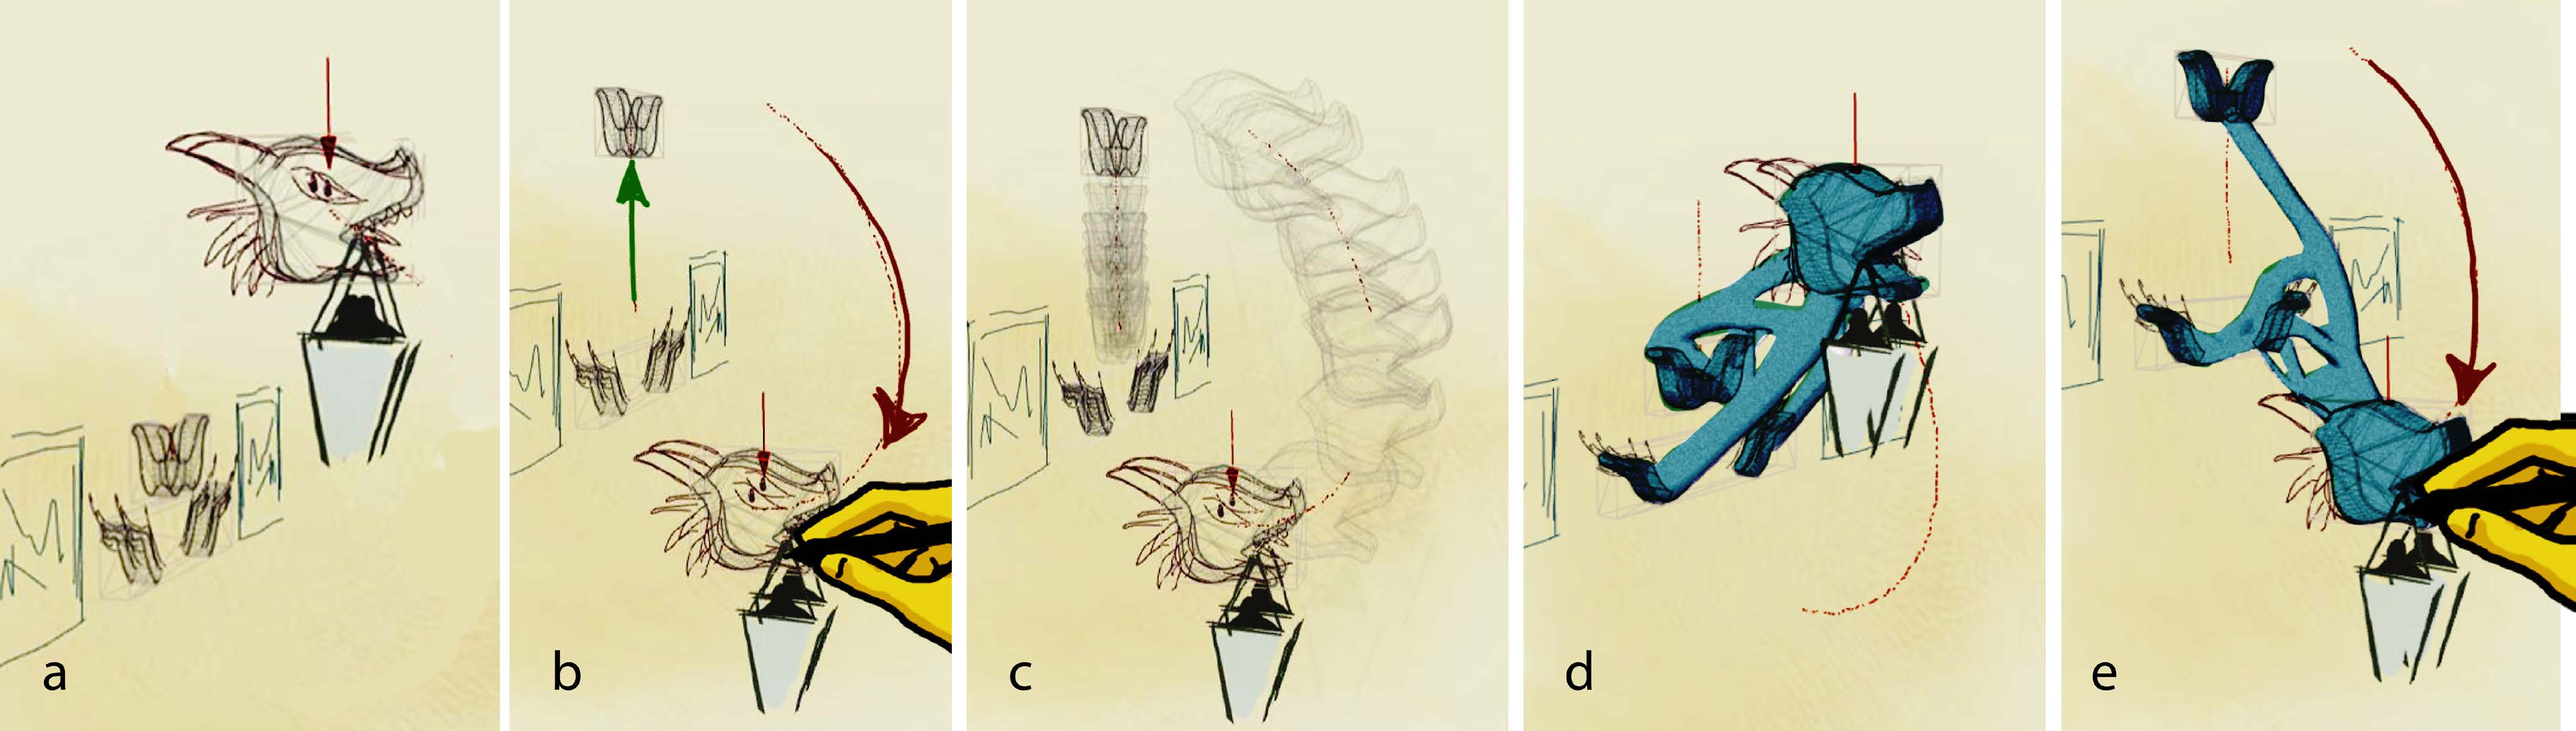 Image:  Source Autodesk DreamSketch Figure 1: We bring the power of generative design in the early stages of design exploration with freeform 3D sketches. (a) The user defines a problem definition by roughly sketching a dragon-shaped lamp holder, the anchor to the wall, and a load value (redarrow). (b) The user then defines a design variable (red) and a constraint (green) to specify a range of possible spatial configurations. (c) The design space of the resulting problem definition is specified, with a range of possibilities. (d-e) Our system then generates optimal solutions for the entire design space using topology optimization, along with their performance data. The user navigates through the results by directly manipulating the objects.